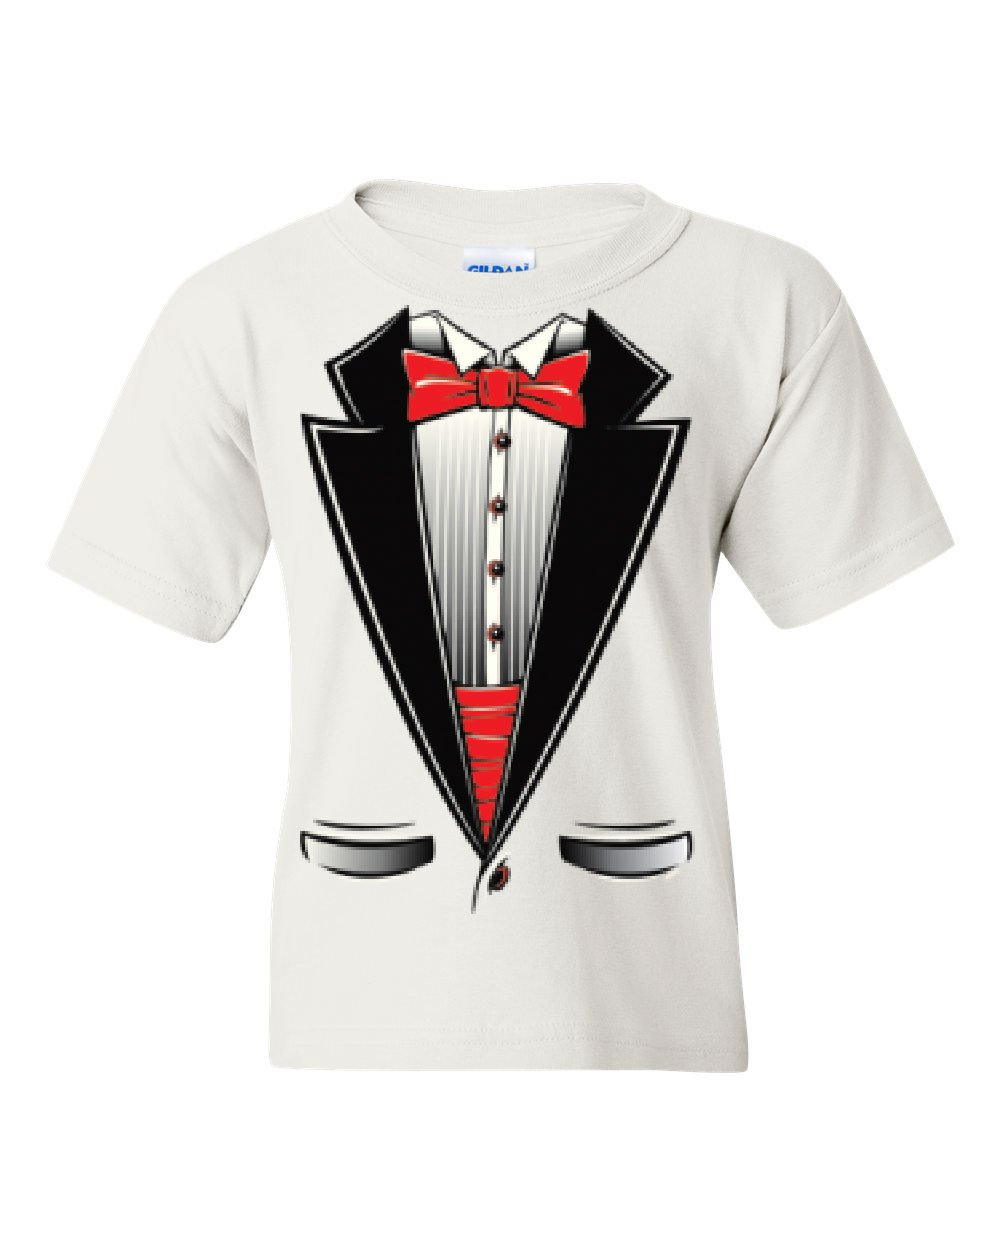 Funny Tuxedo Bow Tie Youth T-Shirt Tux Wedding Party Tee White L